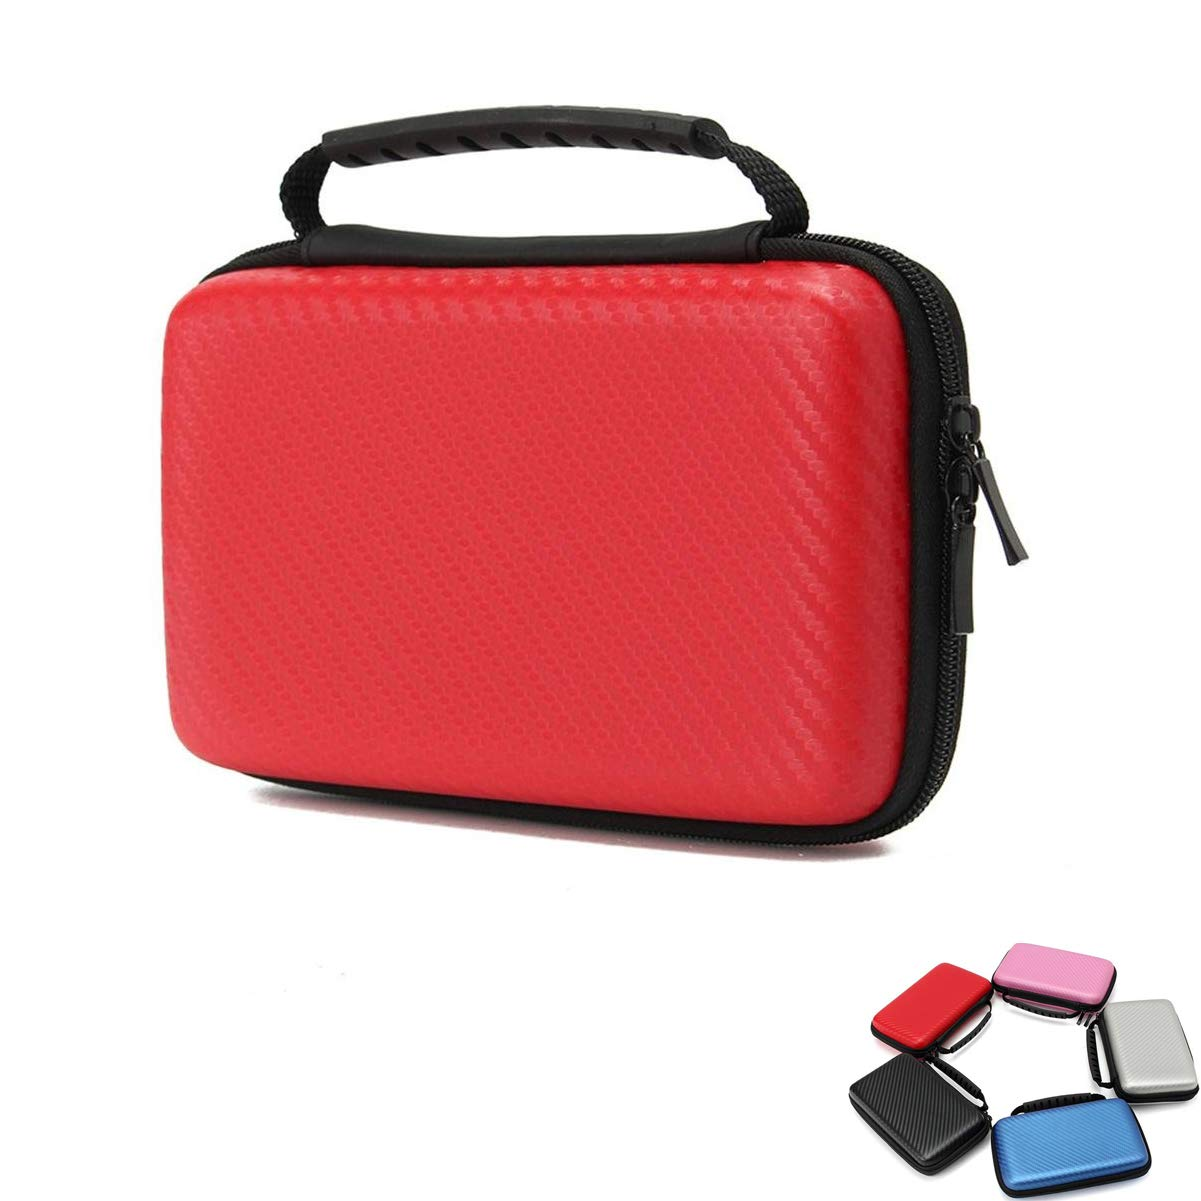 MIFAVOR Carrying Case for New Nintendo 2DS XL Hard Case Bag with Handle for New 2DS XL 2017 (Red)